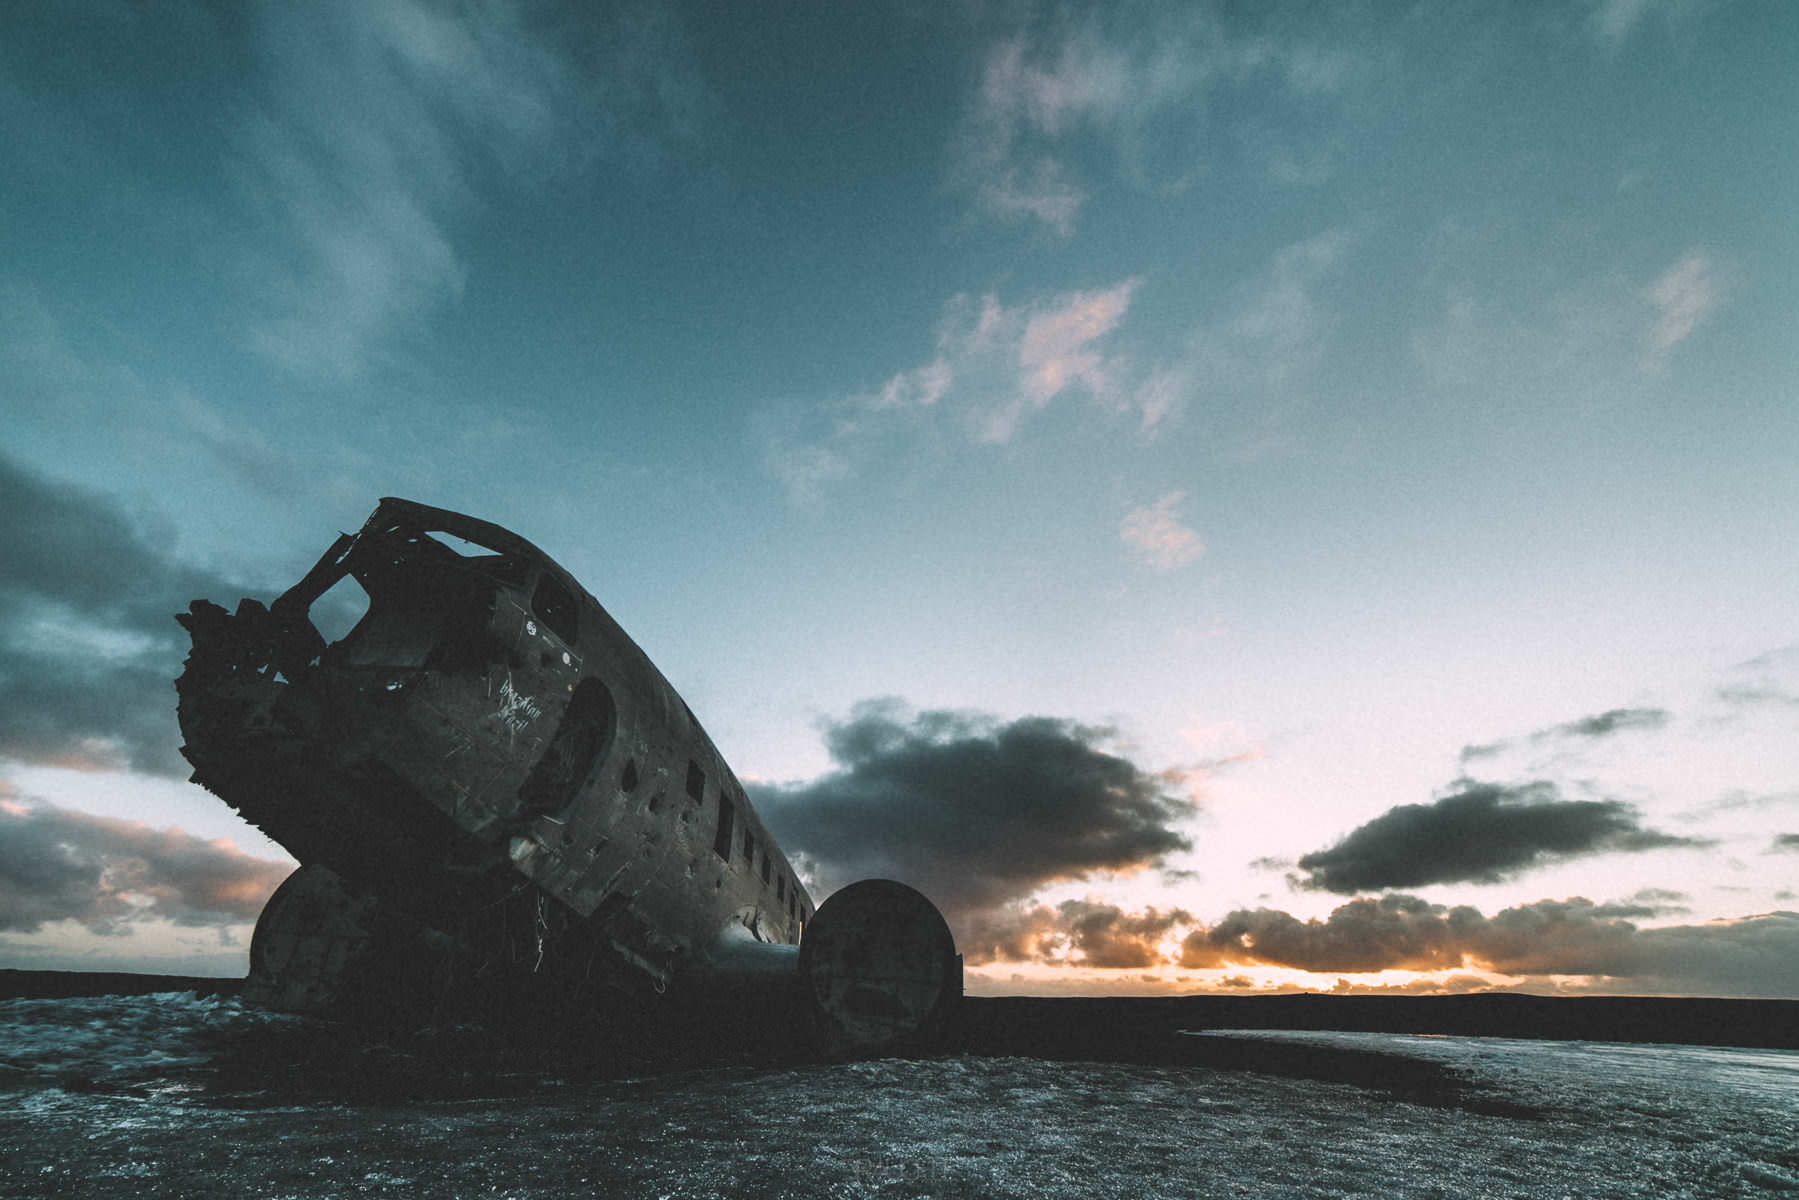 iceland-airplane-wreck-dc3-drone-0012